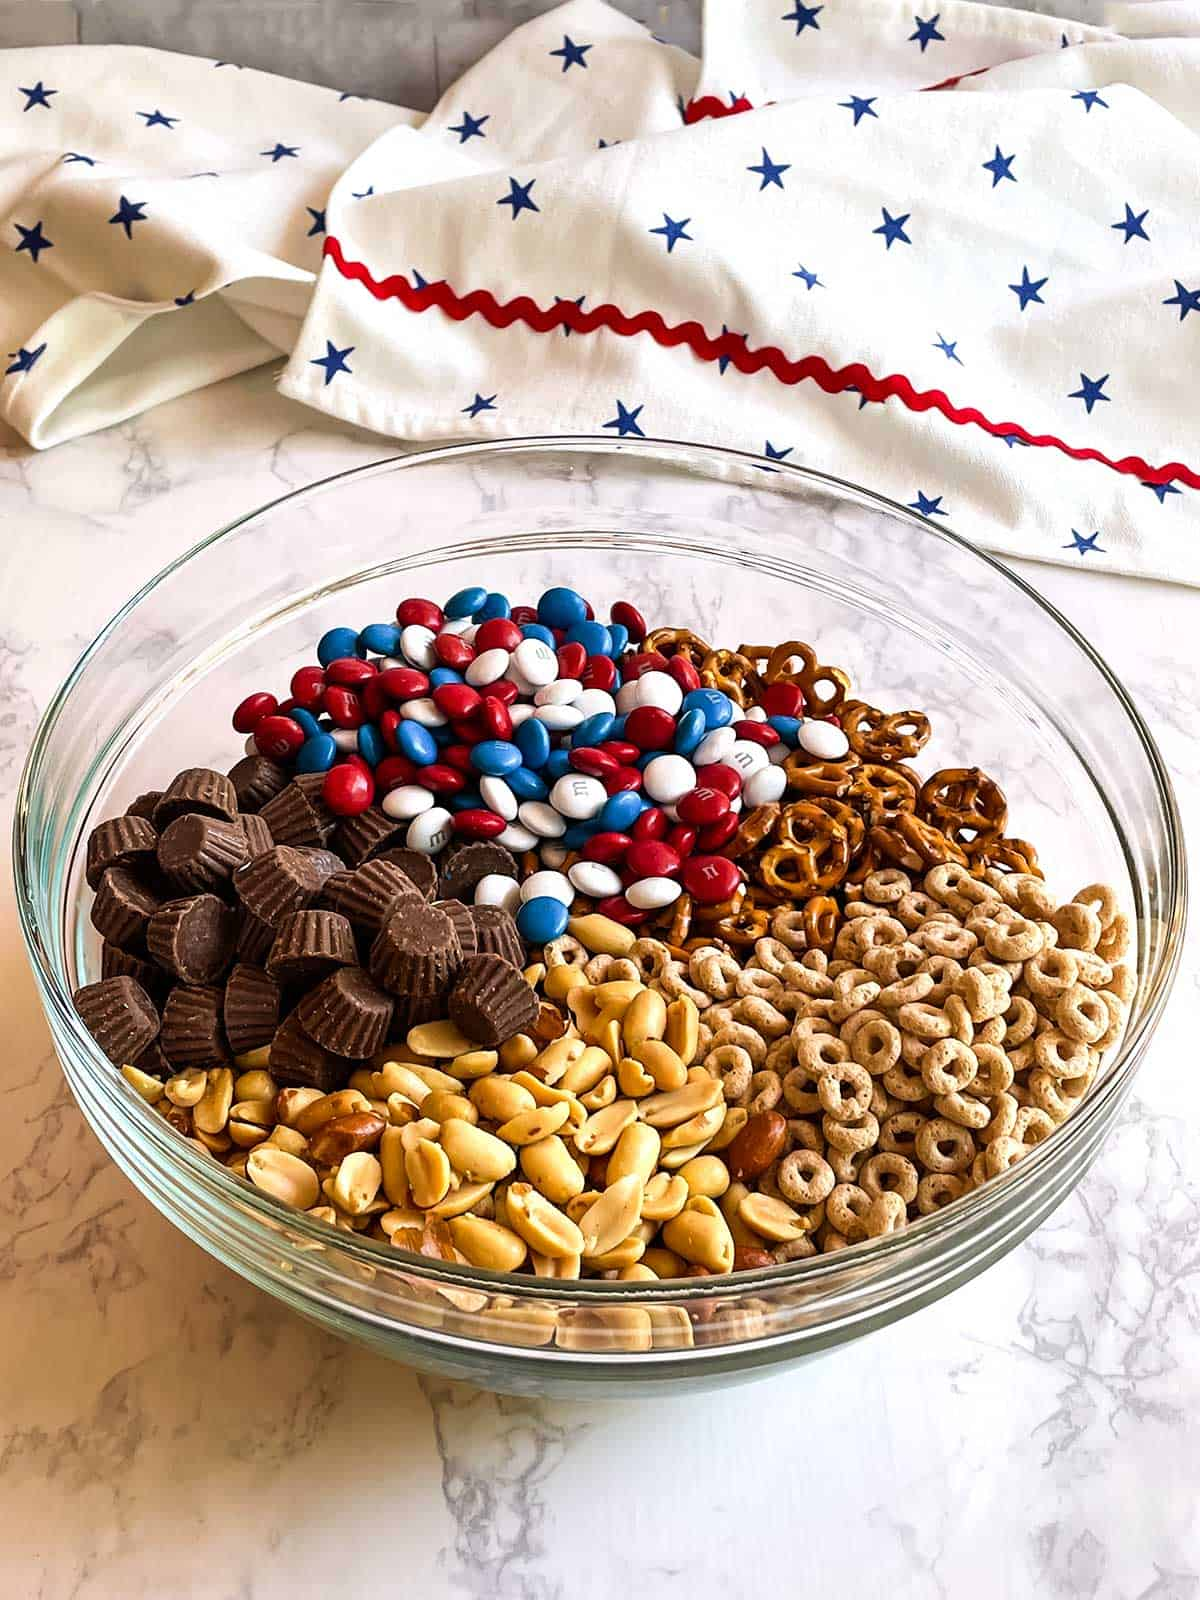 Snack mix ingredients in a large bowl.